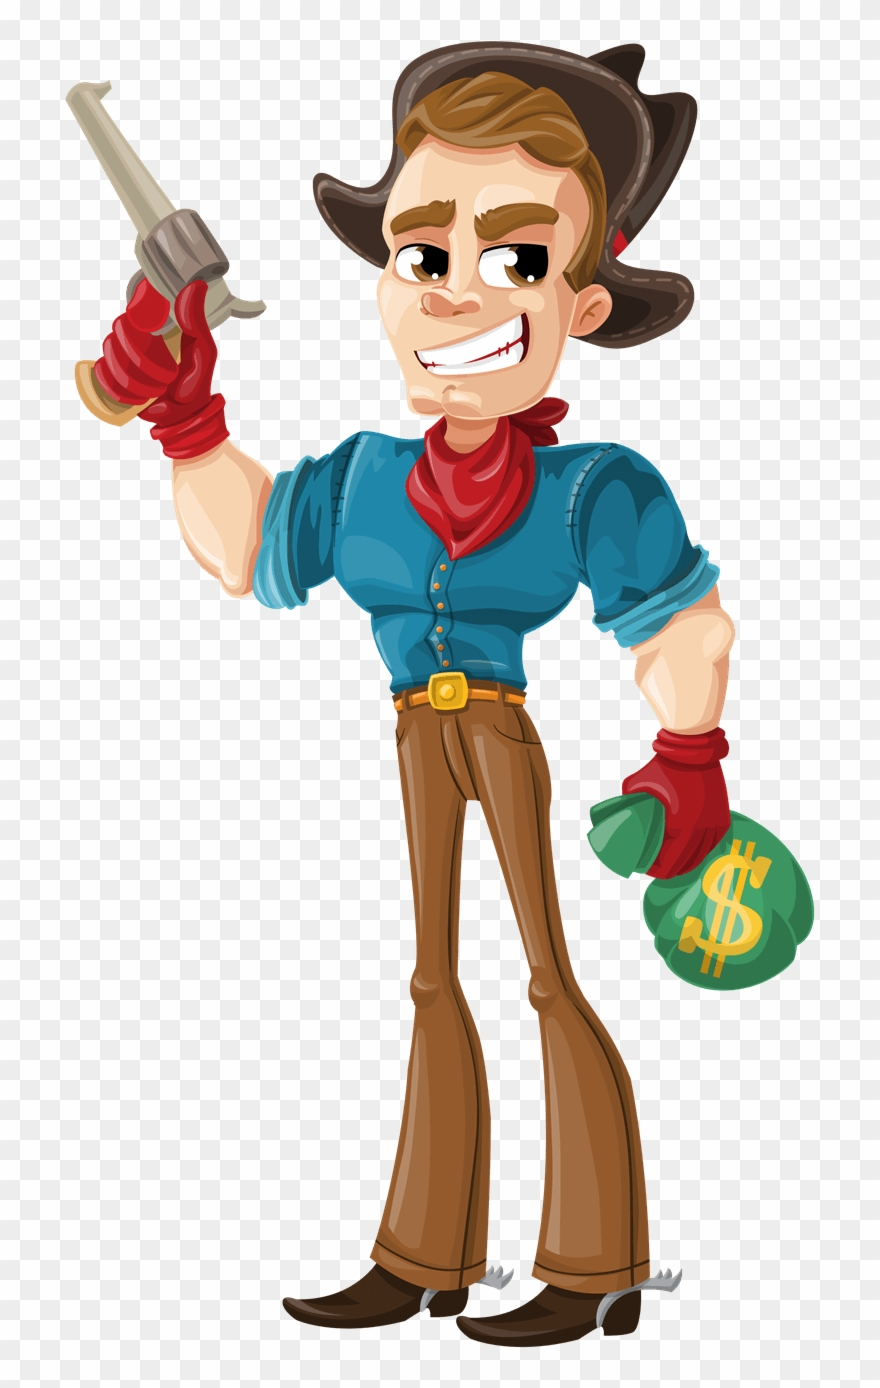 Outlaw hat clipart no background clip library library Outlaw Cowboy Png No Background & Free Outlaw Cowboy No ... clip library library